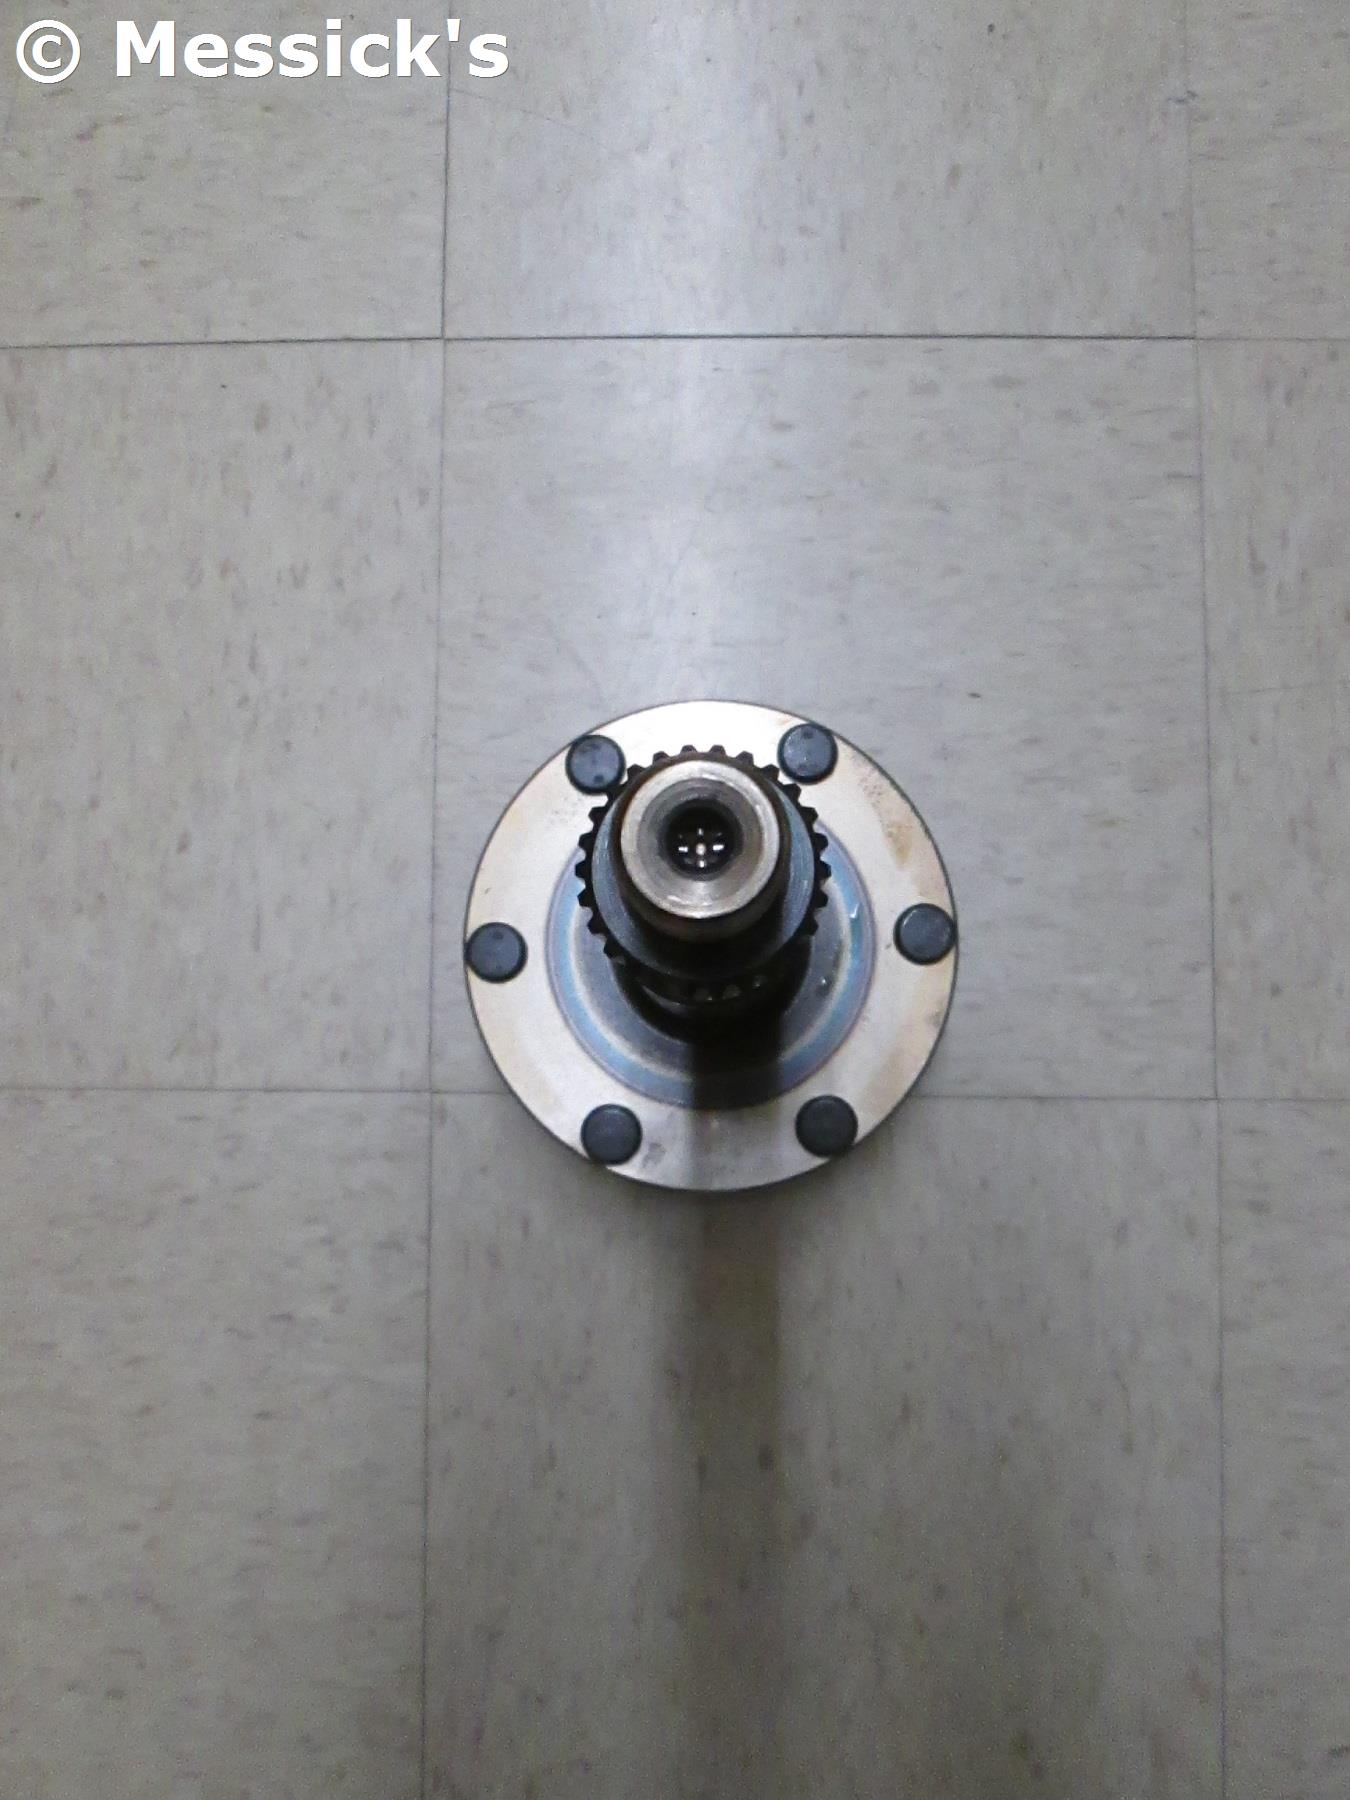 Part Number: 103825A1